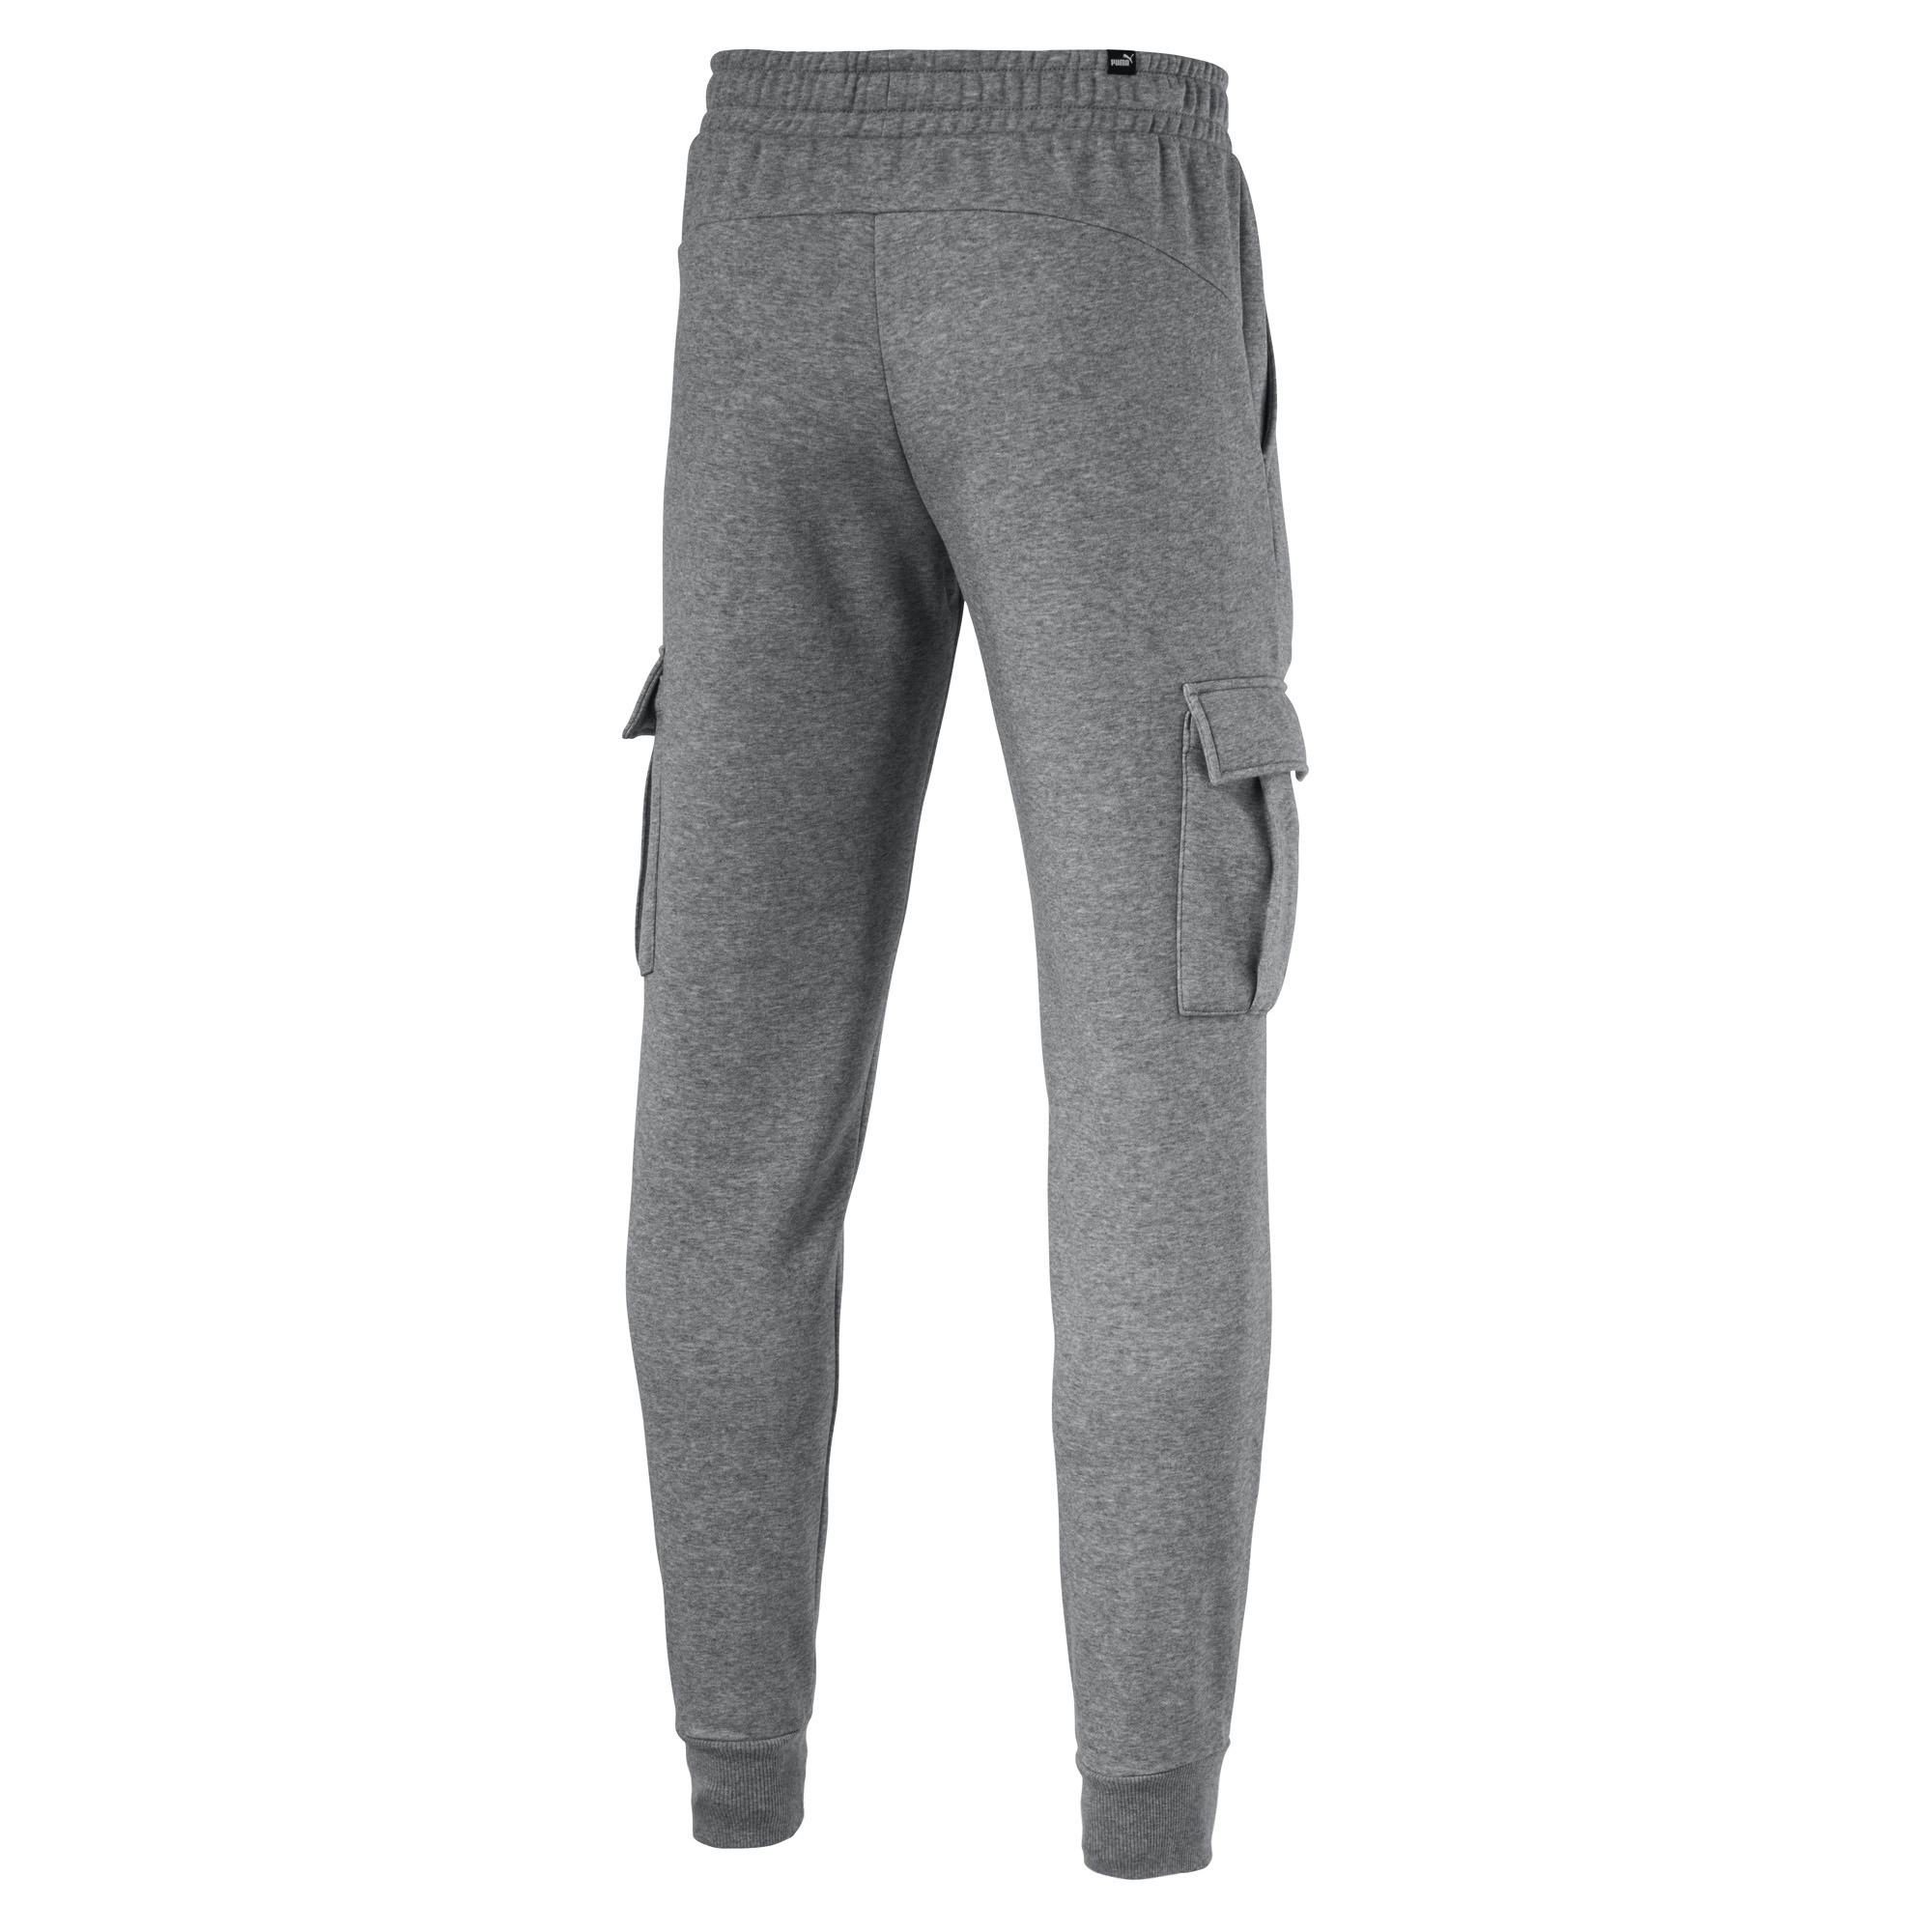 PUMA-Essentials-Men-039-s-Pocket-Pants-Men-Knitted-Pants-Basics thumbnail 3